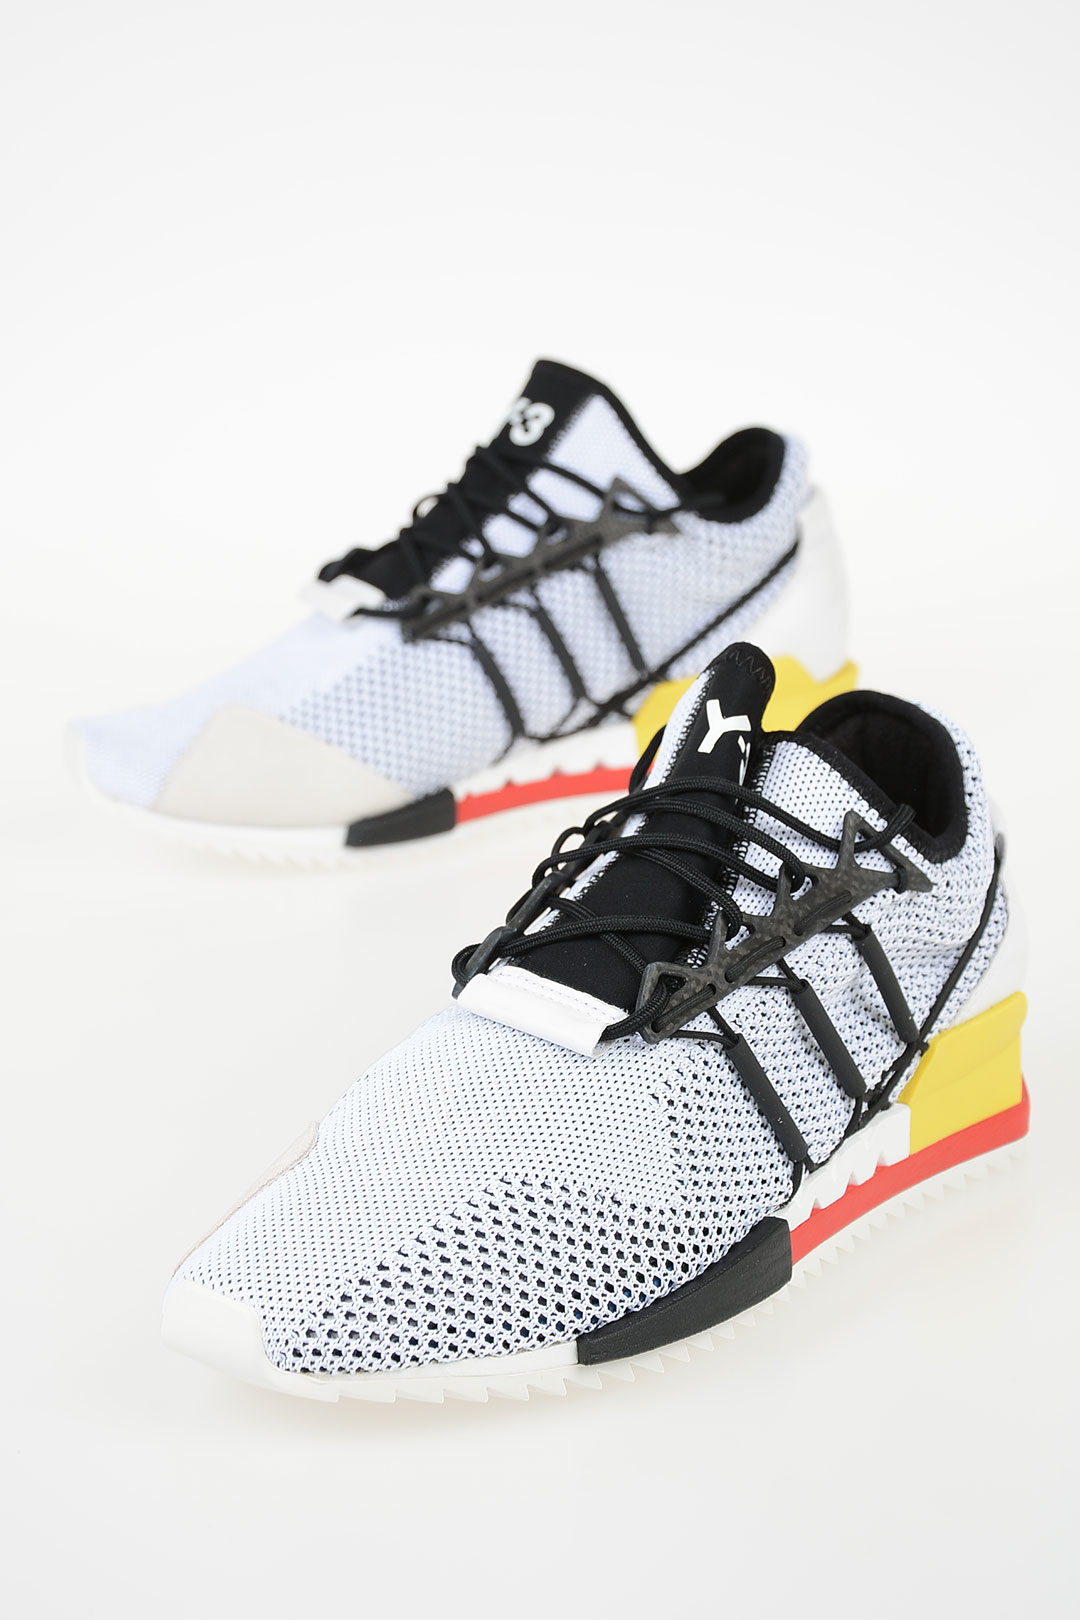 7050be7259c0b Adidas Y3 Sneakers HARIGANE - Glamood Outlet